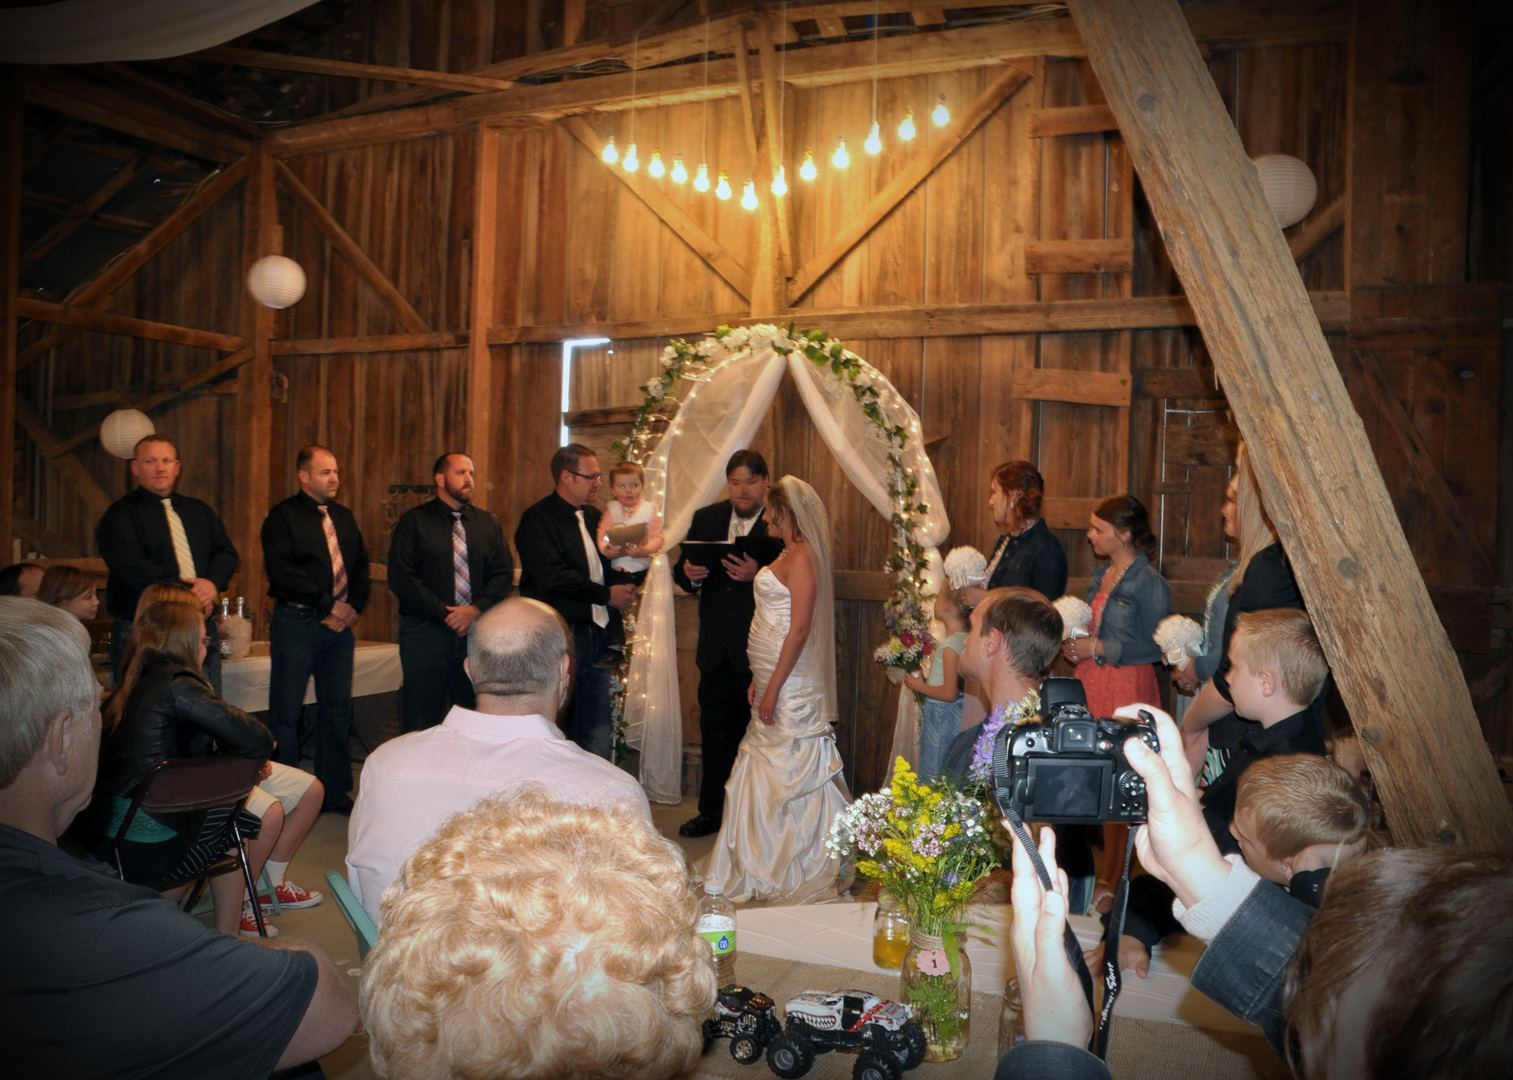 Just The Place Barn Weddings - 7